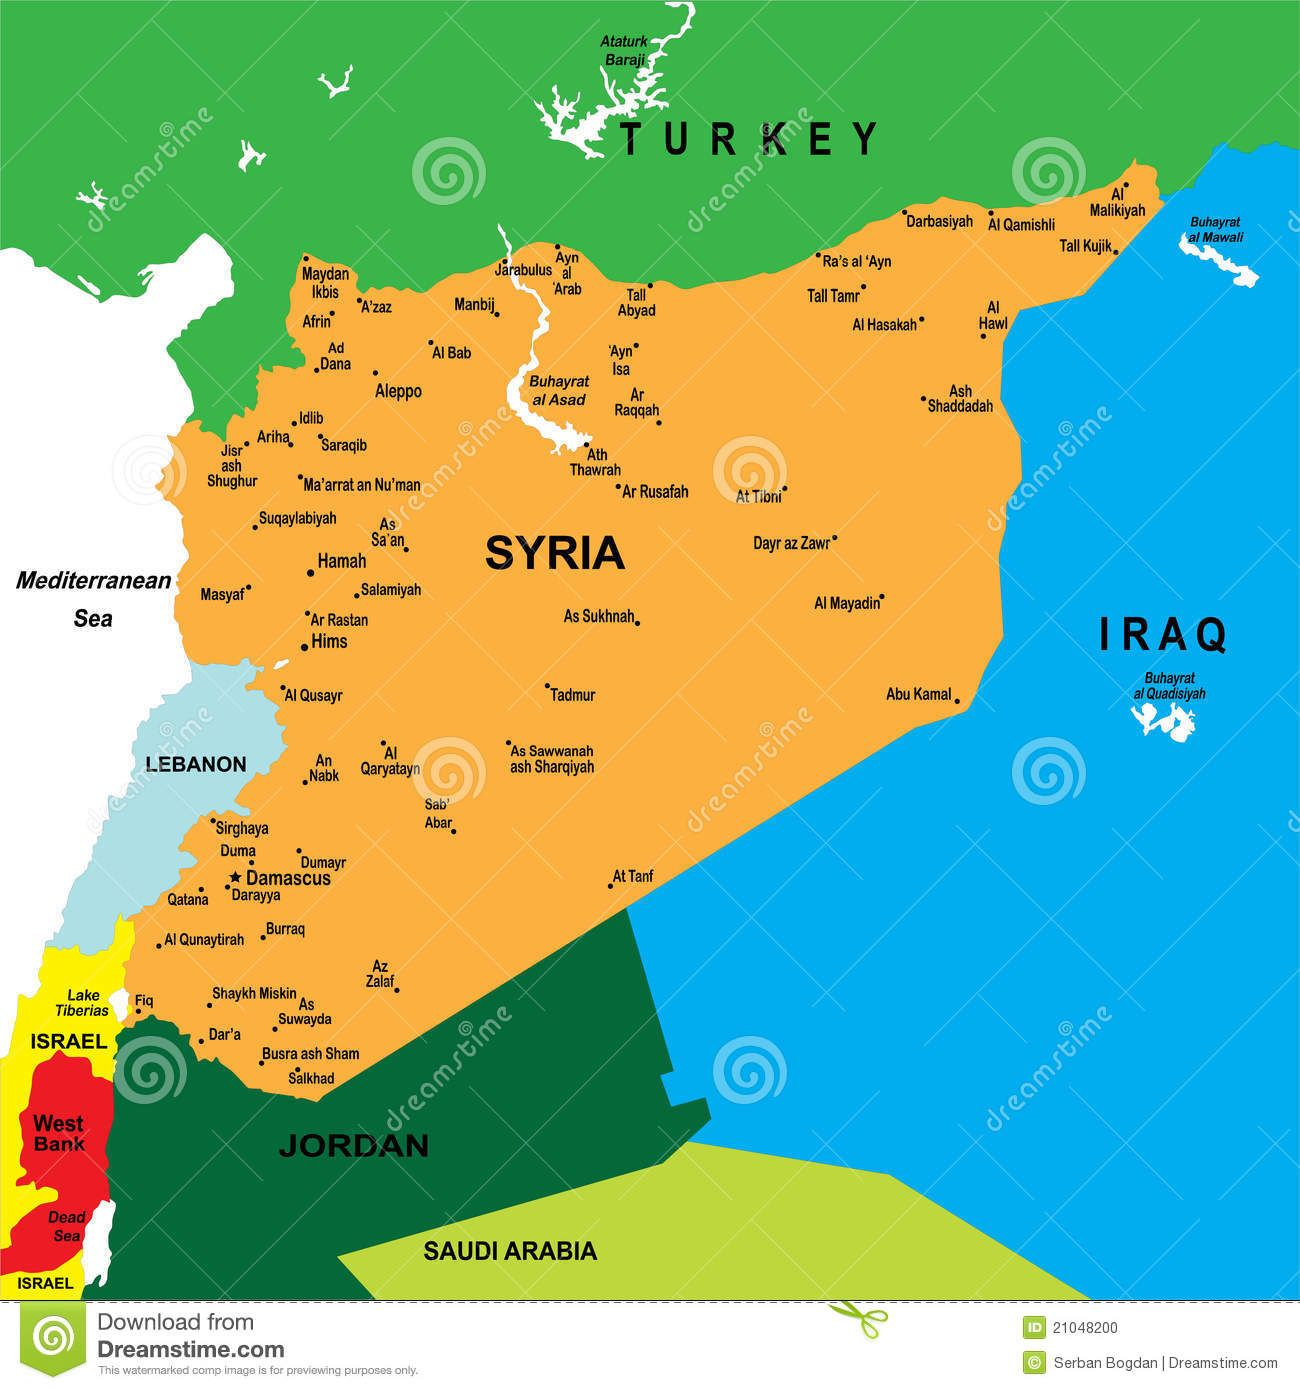 map of syria Political map of Syria with main cities Maps